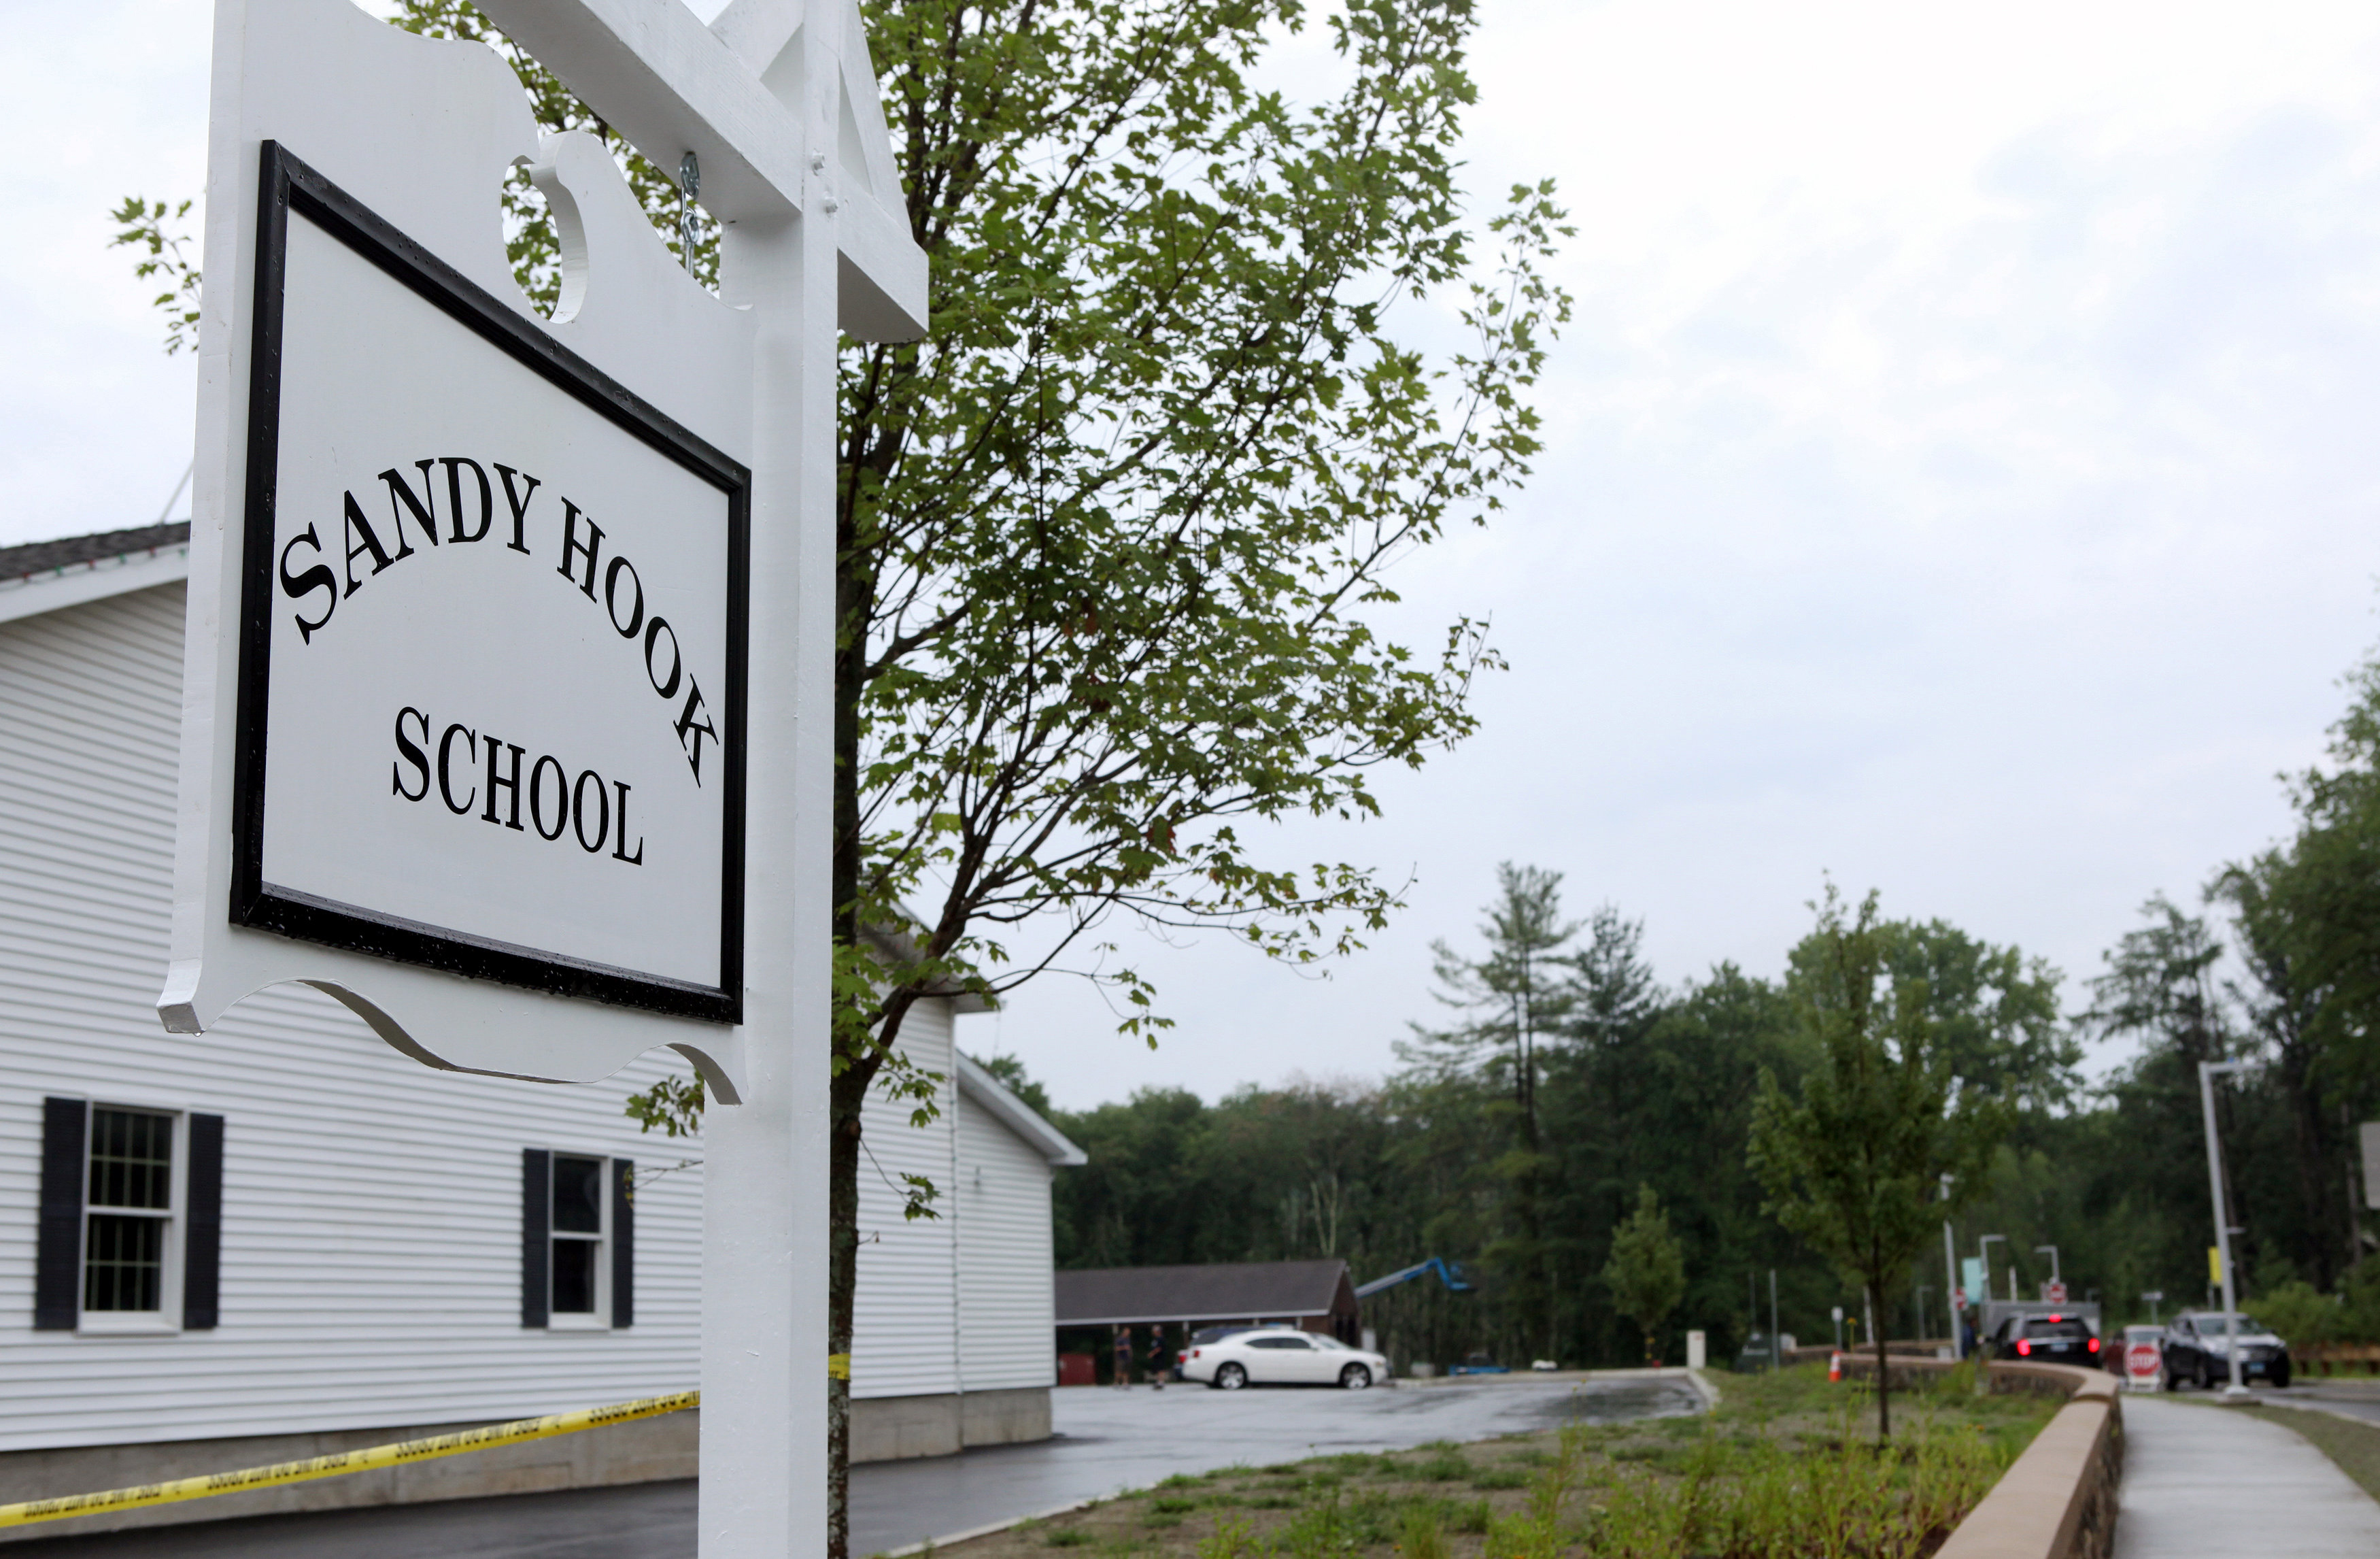 Two Years Post Newtown Whats Changed >> New Sandy Hook School Reopens Nearly 4 Years After Massacre Cbs News